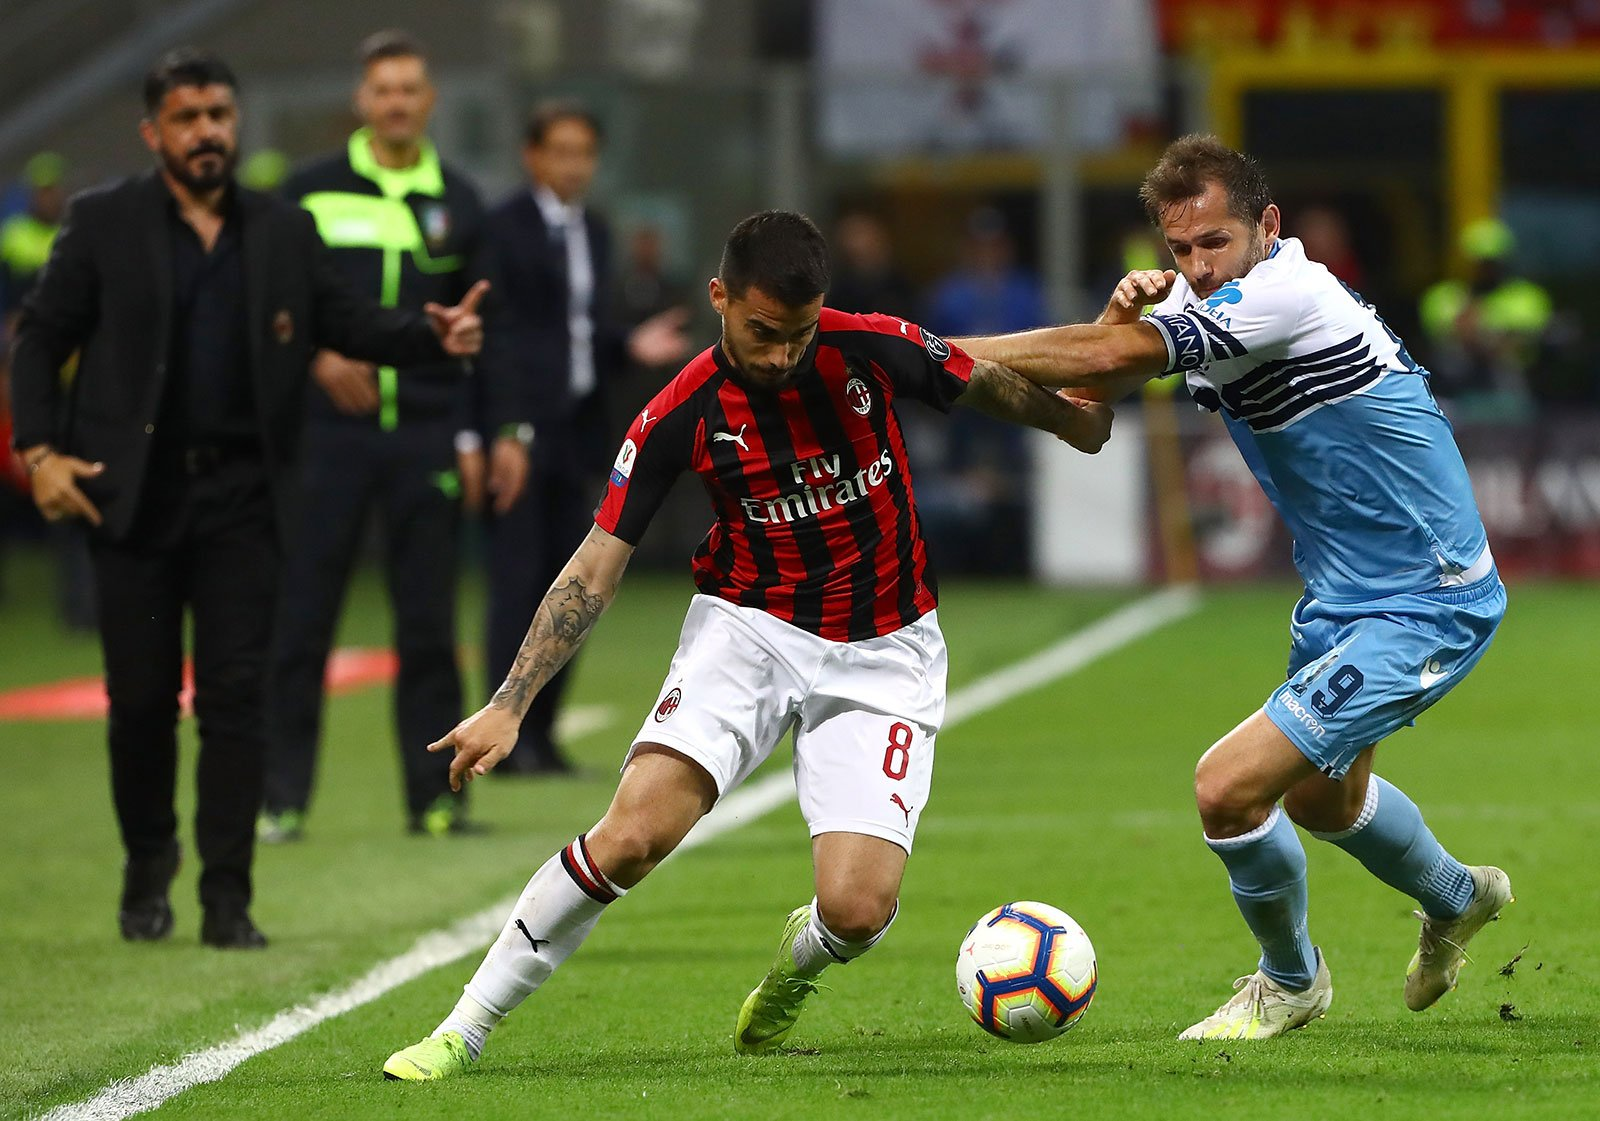 Suso and Senad Lulić during Milan-Lazio at Stadio San Siro on April 24, 2019. (Photo by Marco Rosi/Getty Images)